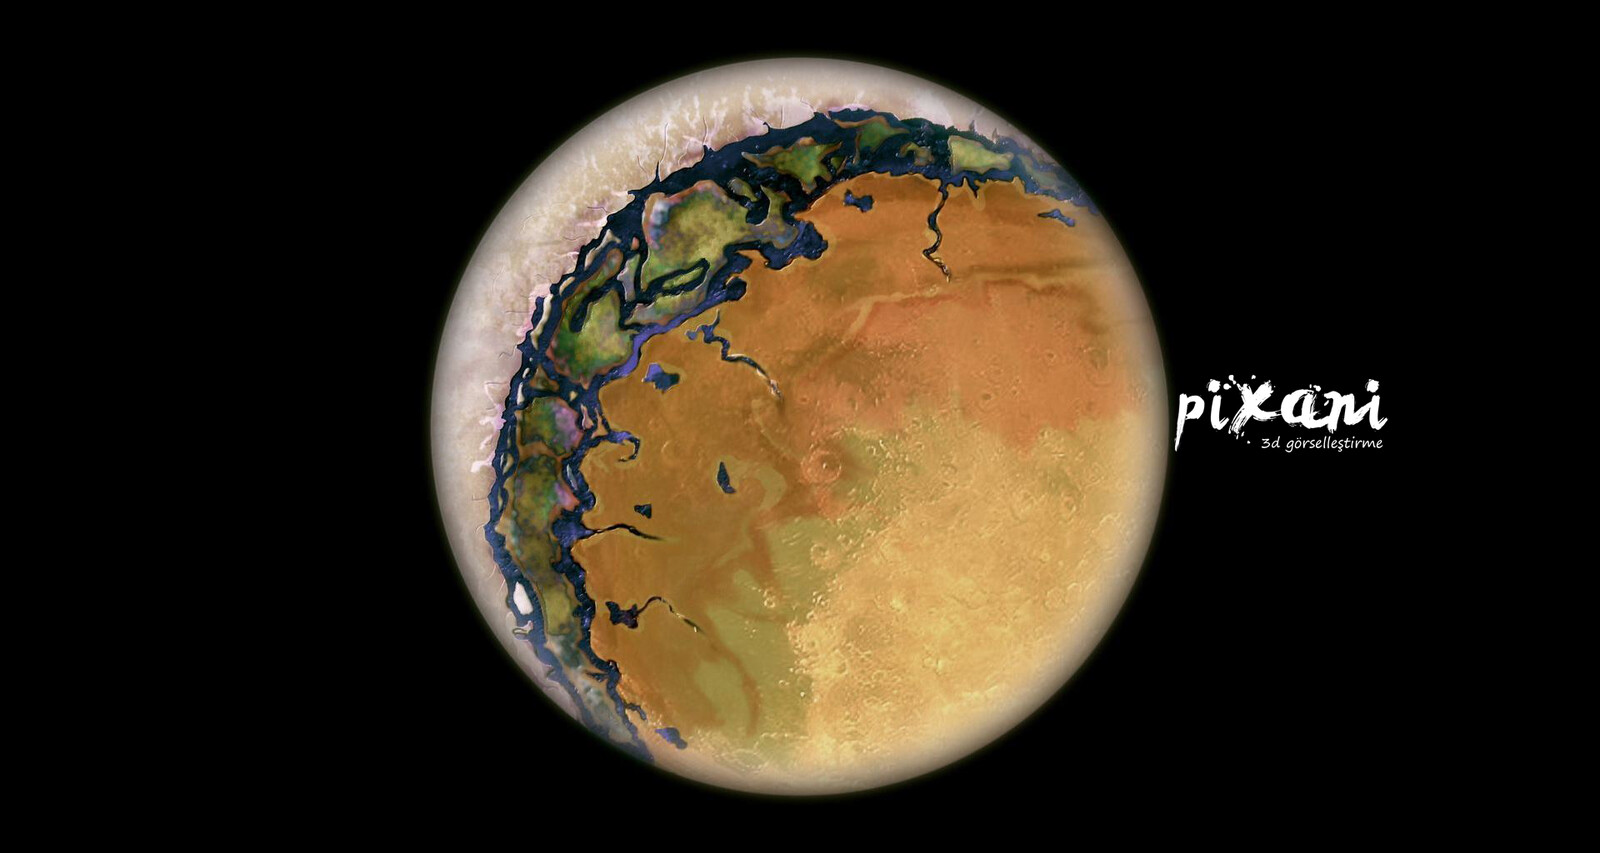 Half snow and half desert planet - how?  This's all about turning around it's own star speed and turning spin speed of Planet. If spin speed is much more slower or turnway around Star is very fast, so similar result for each era.  Like Moon & Earth